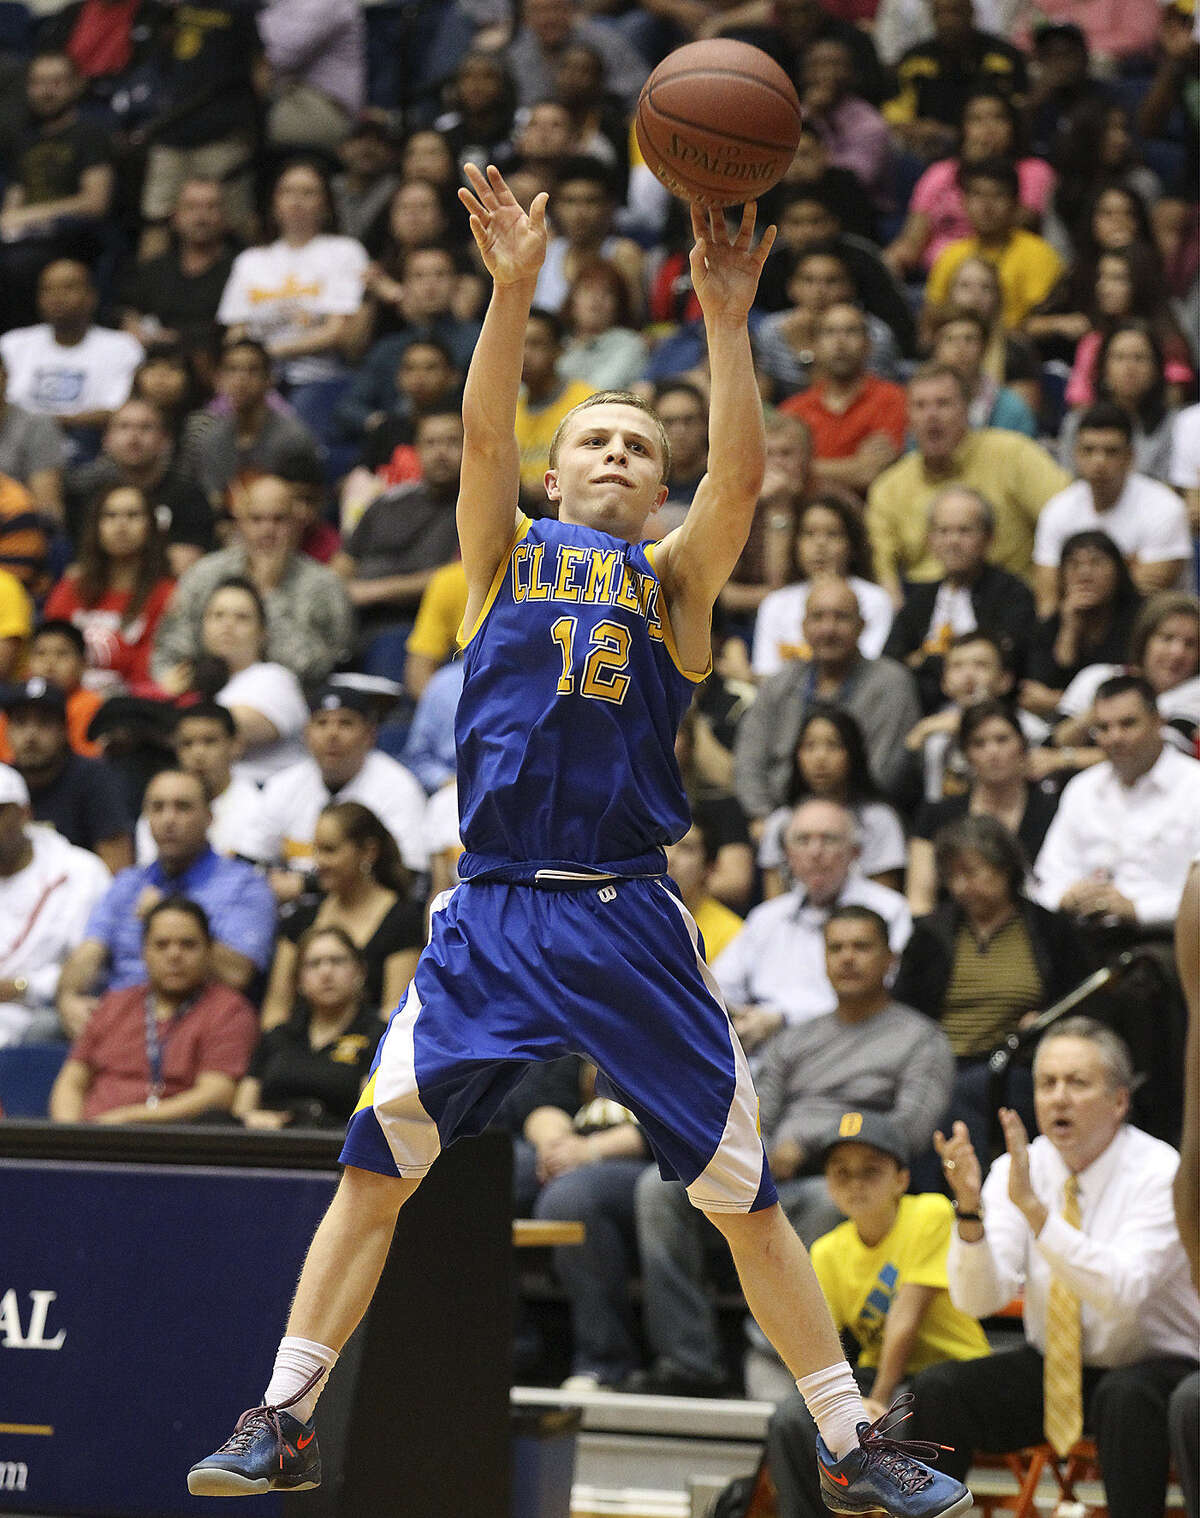 Mitchell McMullen, who had 12 points, takes a shot in Clemens' 88-66 win over Brennan at the UTSA Convocation Center.